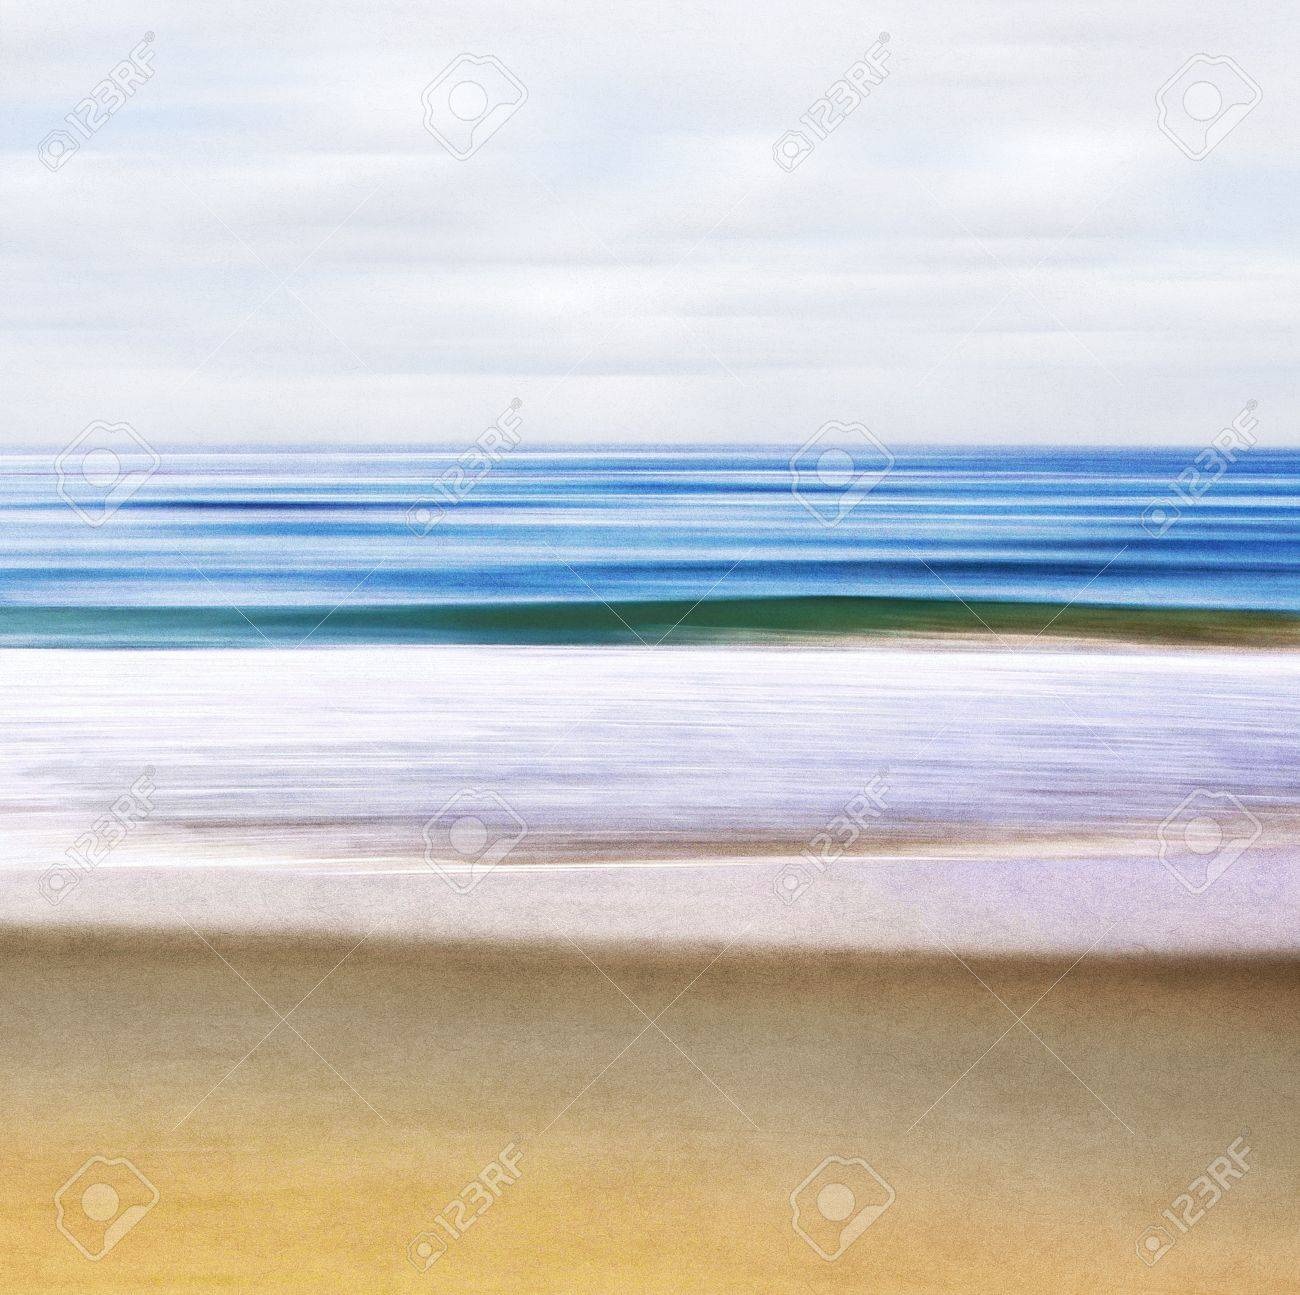 An abstract ocean seascape with blurred motion   Image displays a paper texture and pleasing grain pattern when viewed at 100 Stock Photo - 18834428